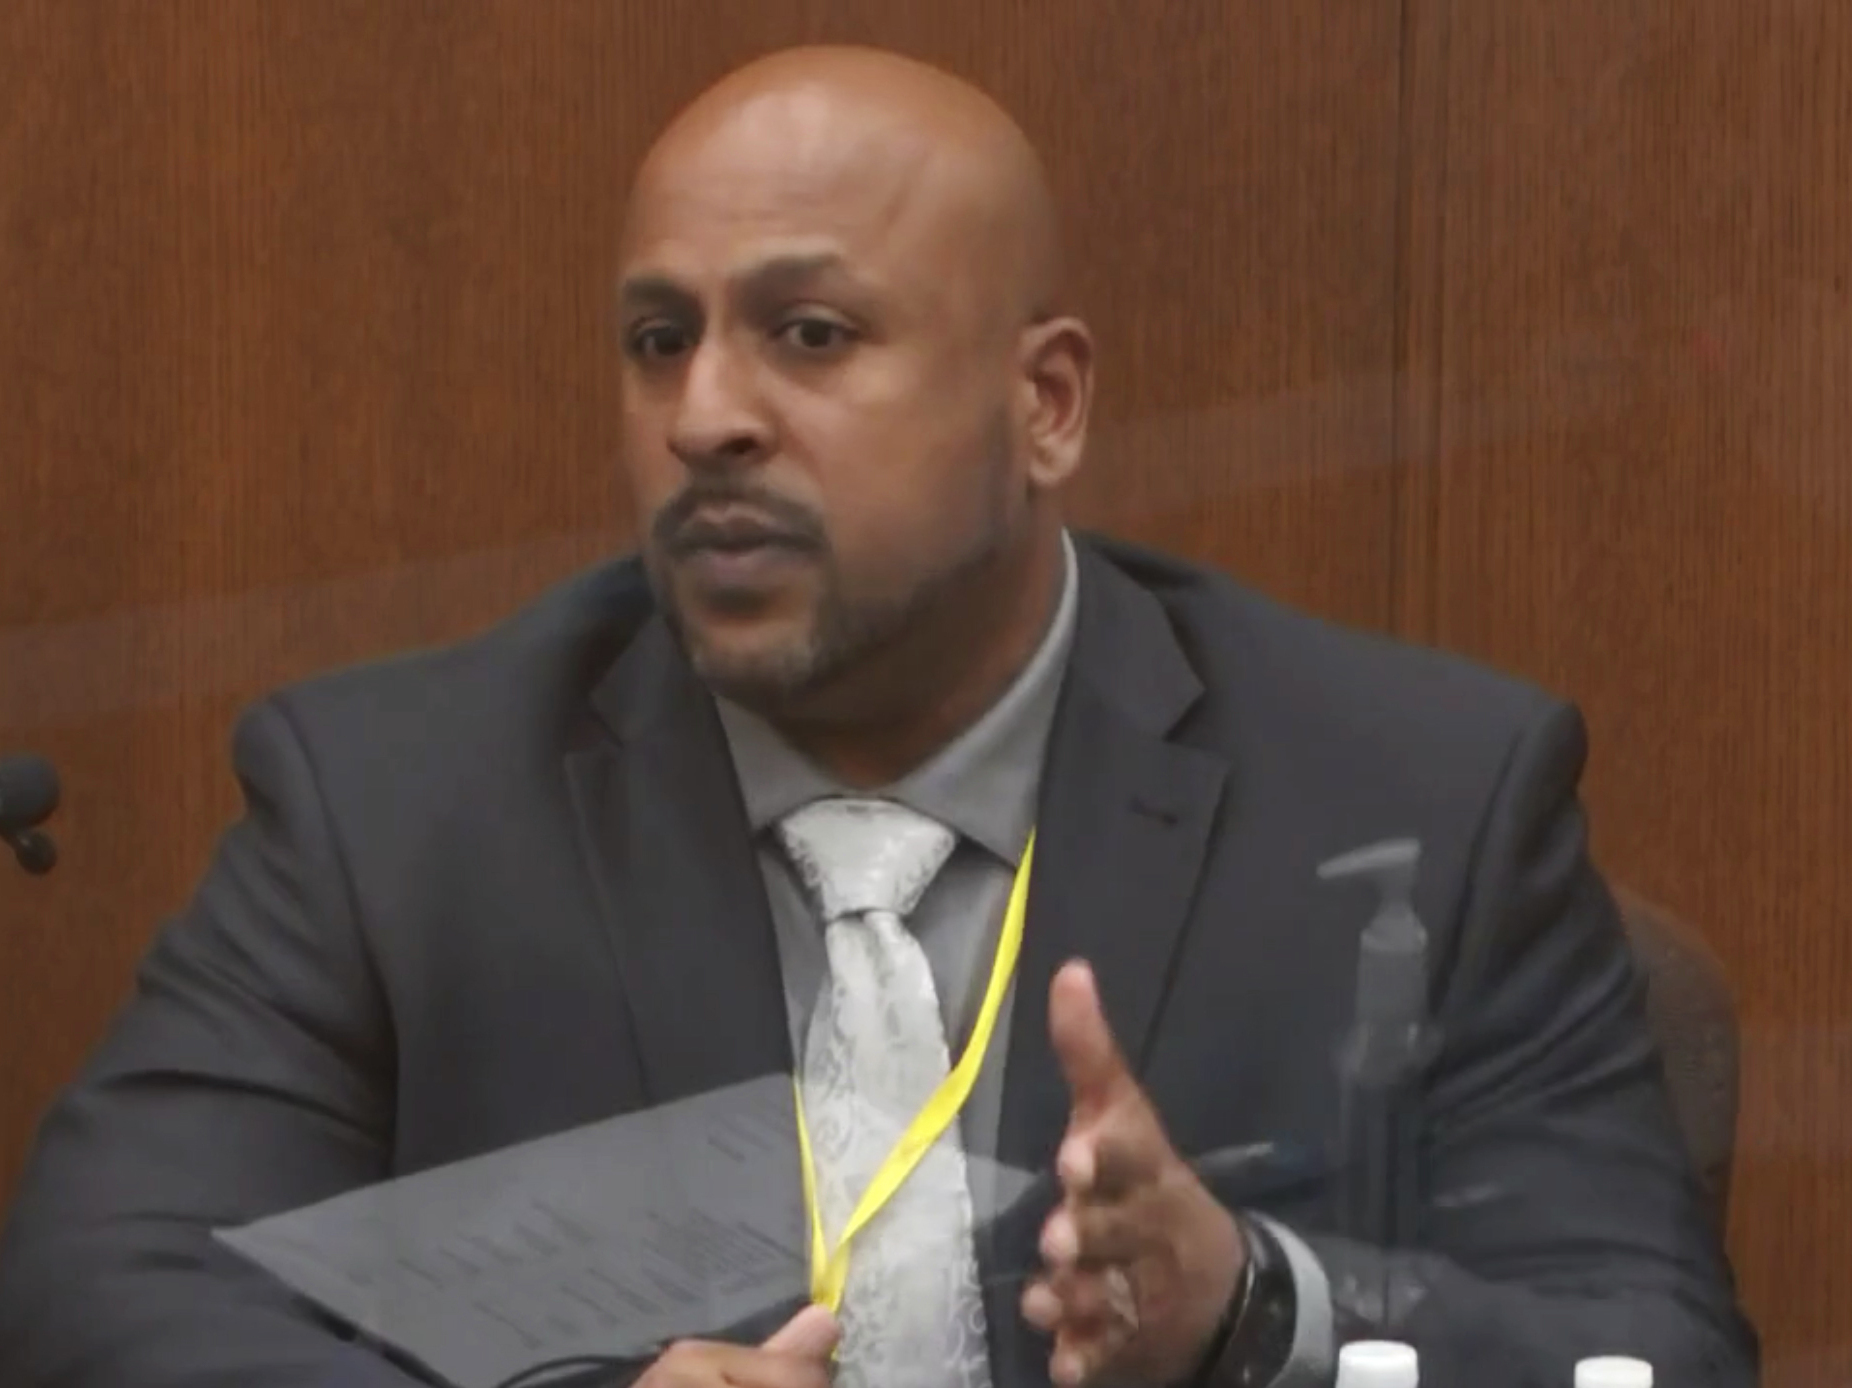 Chauvin Trial: Special Agent Testifies Floyd Said, 'I Ain't Do No Drugs'